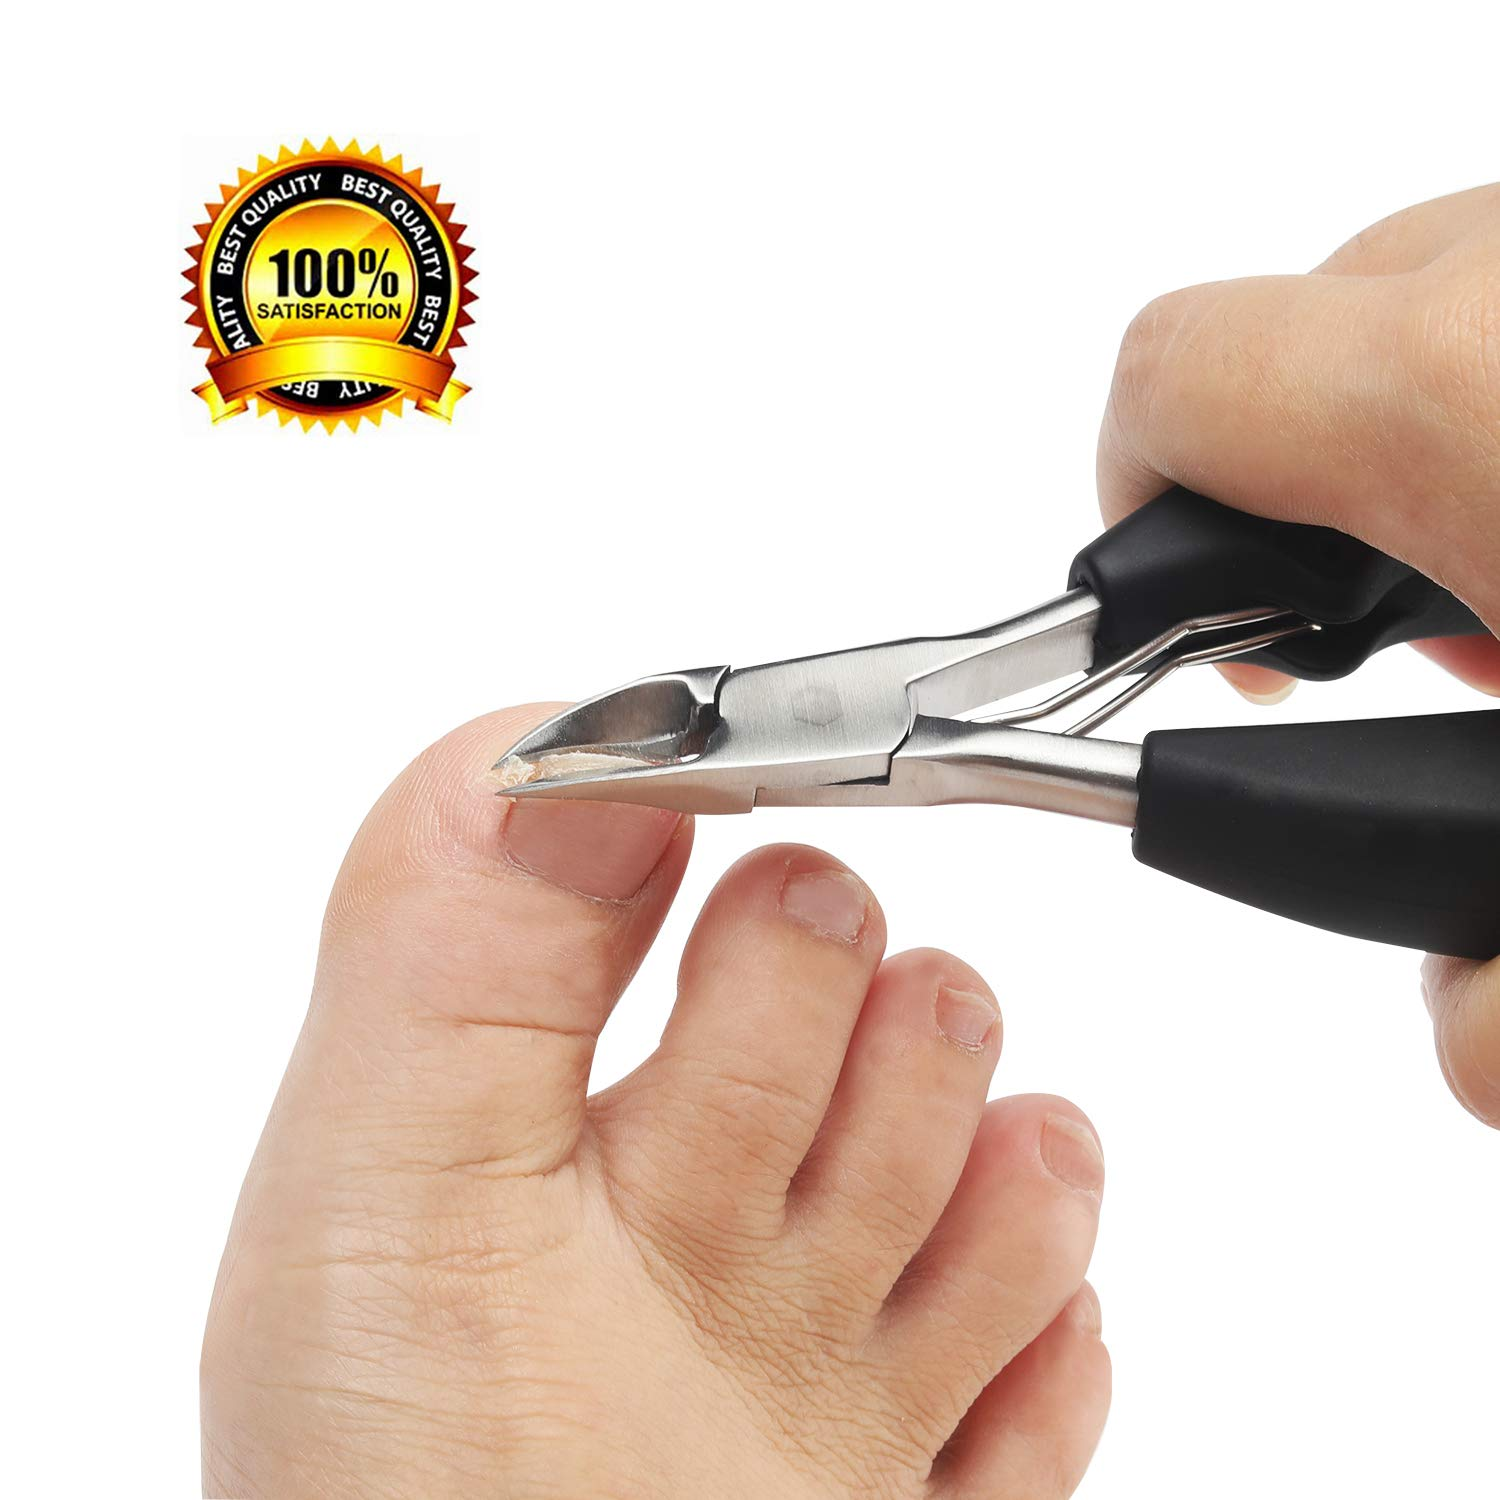 Nail Clippers Toenail Clippers for Thick Nails for Seniors with Curve Diagonal Blade for Ingrown Nails Effortlessly Toe Nail Clippers Heavy Duty Stainless Steel Physician Easy Grip for Older Hand by Leeshar Beau